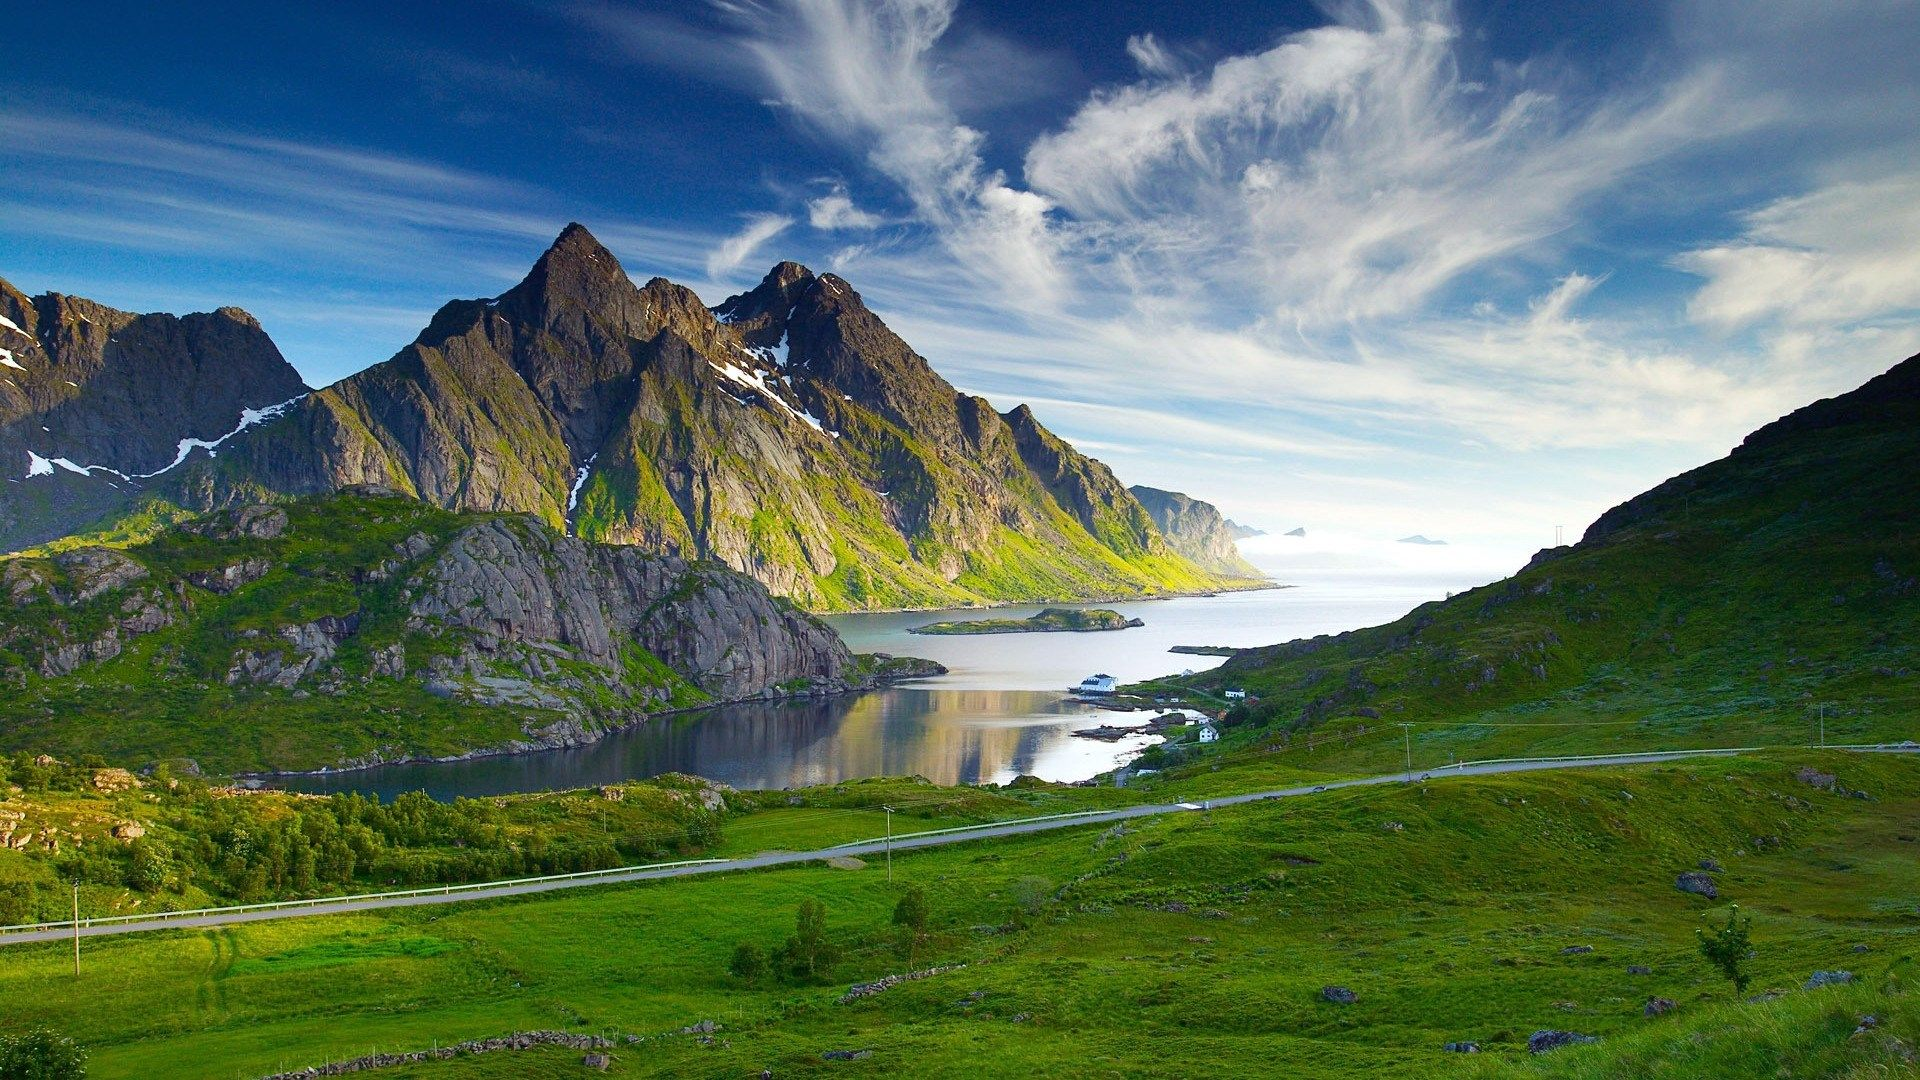 Mountain Backgrounds High Quality Resolution Hd Landscape Landscape Wallpaper Mountain Landscape